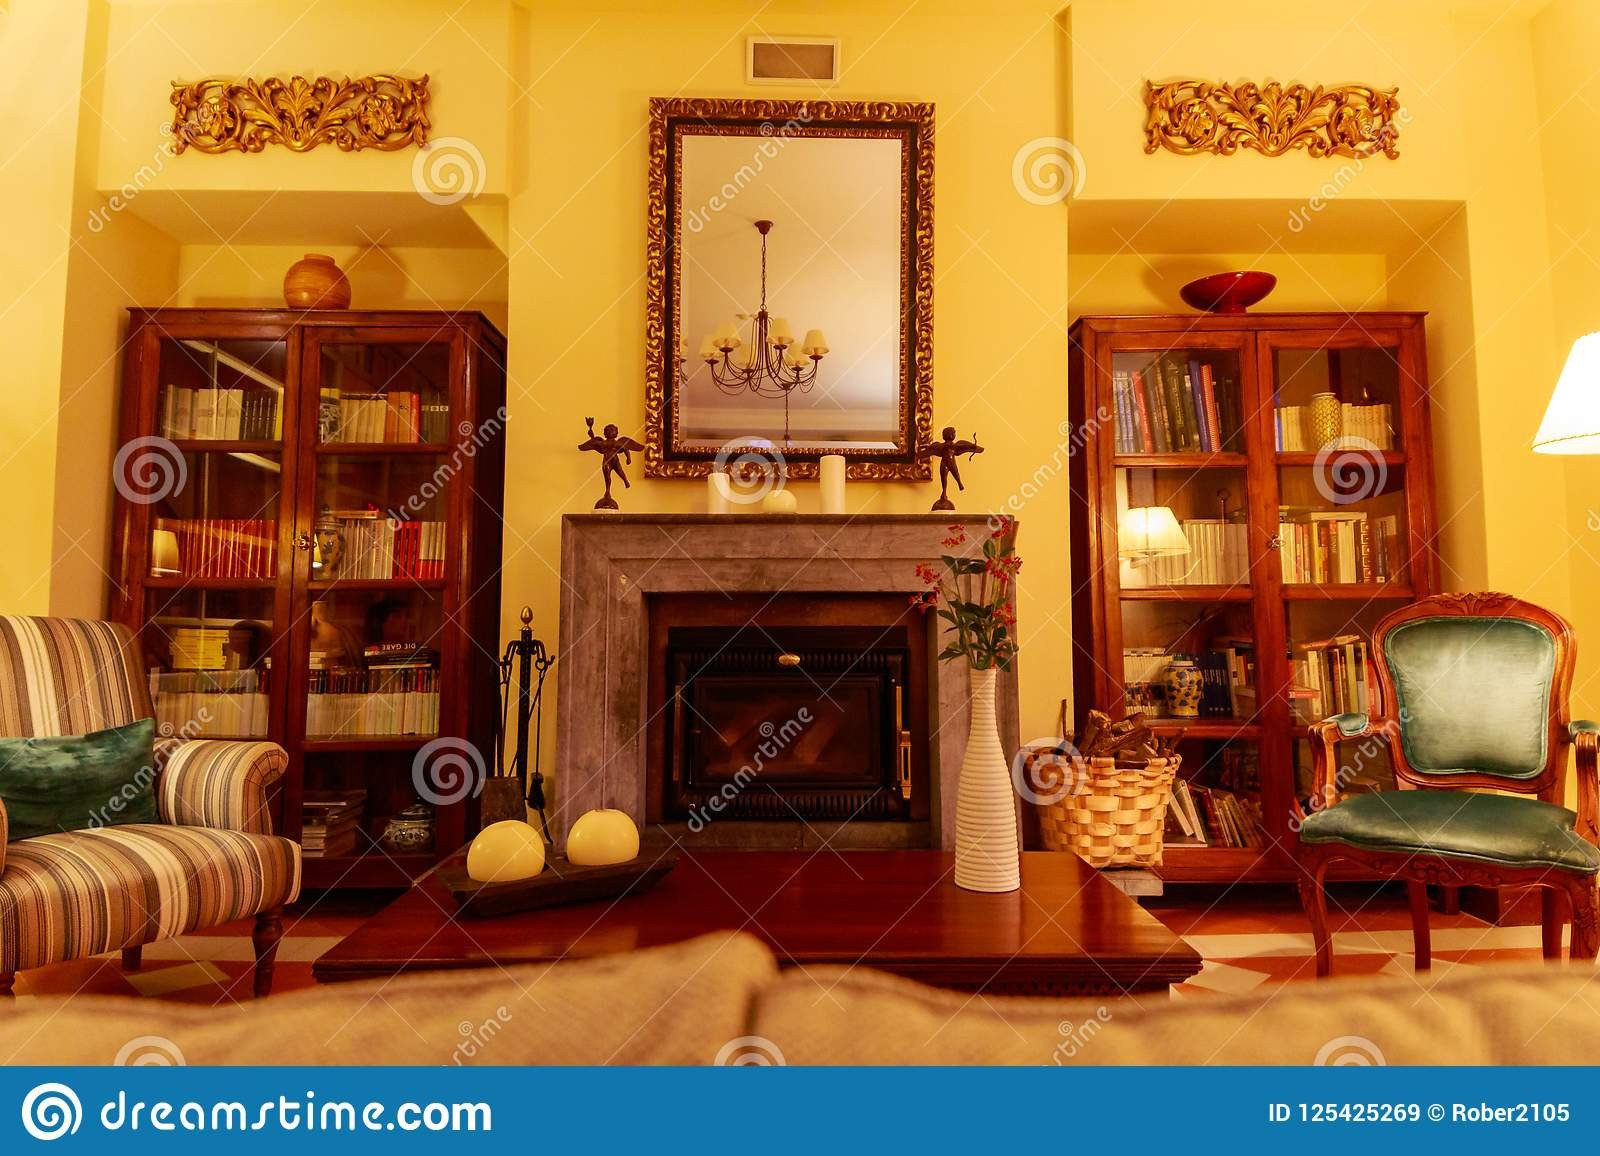 Comfortable Living Room Fireplace Elegant Beautiful and fortable Living Room with A Central Fireplace This is Surrounded by Shelves